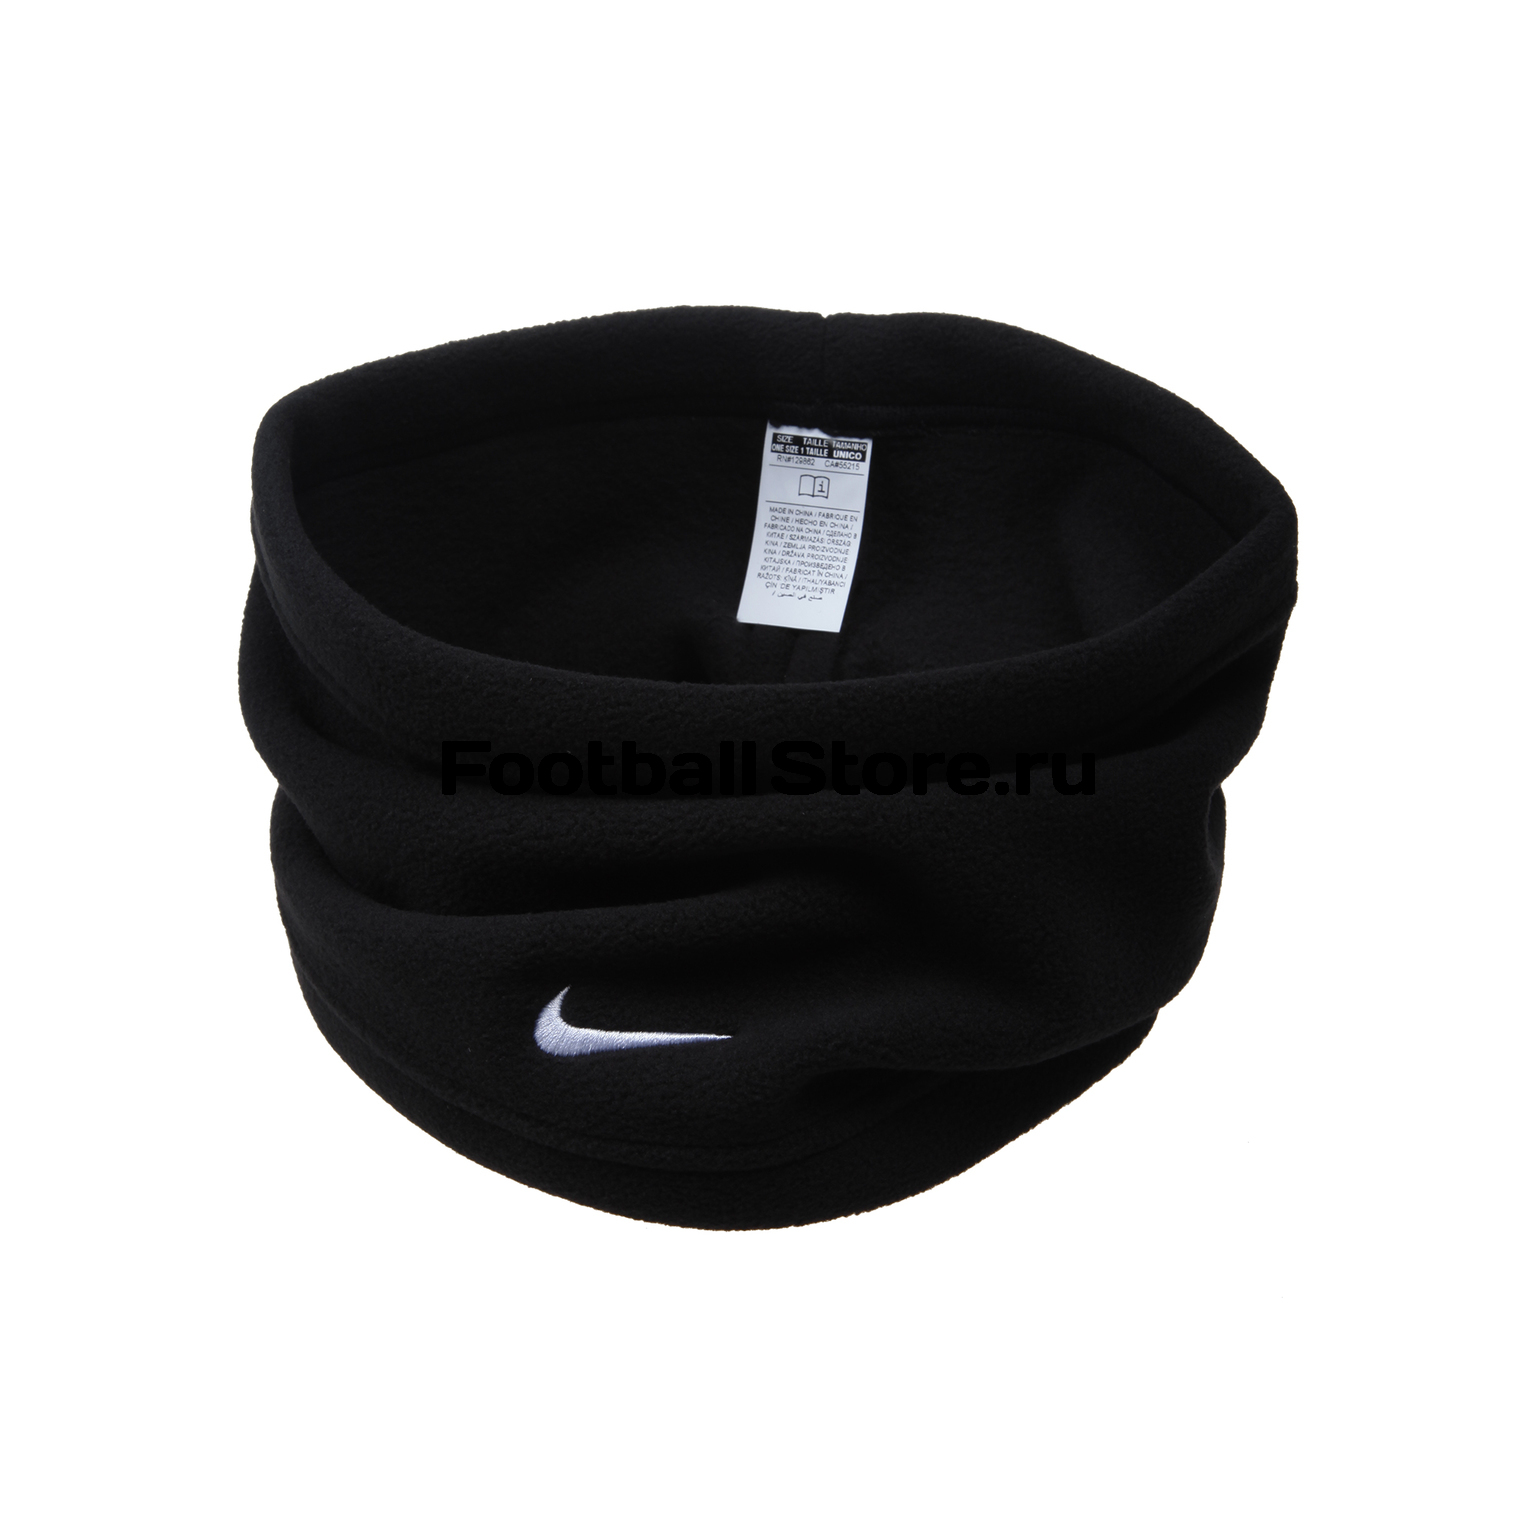 Повязки Nike Повязка на шею Nike Basic Neck Warmer N.WA.55.010.OS